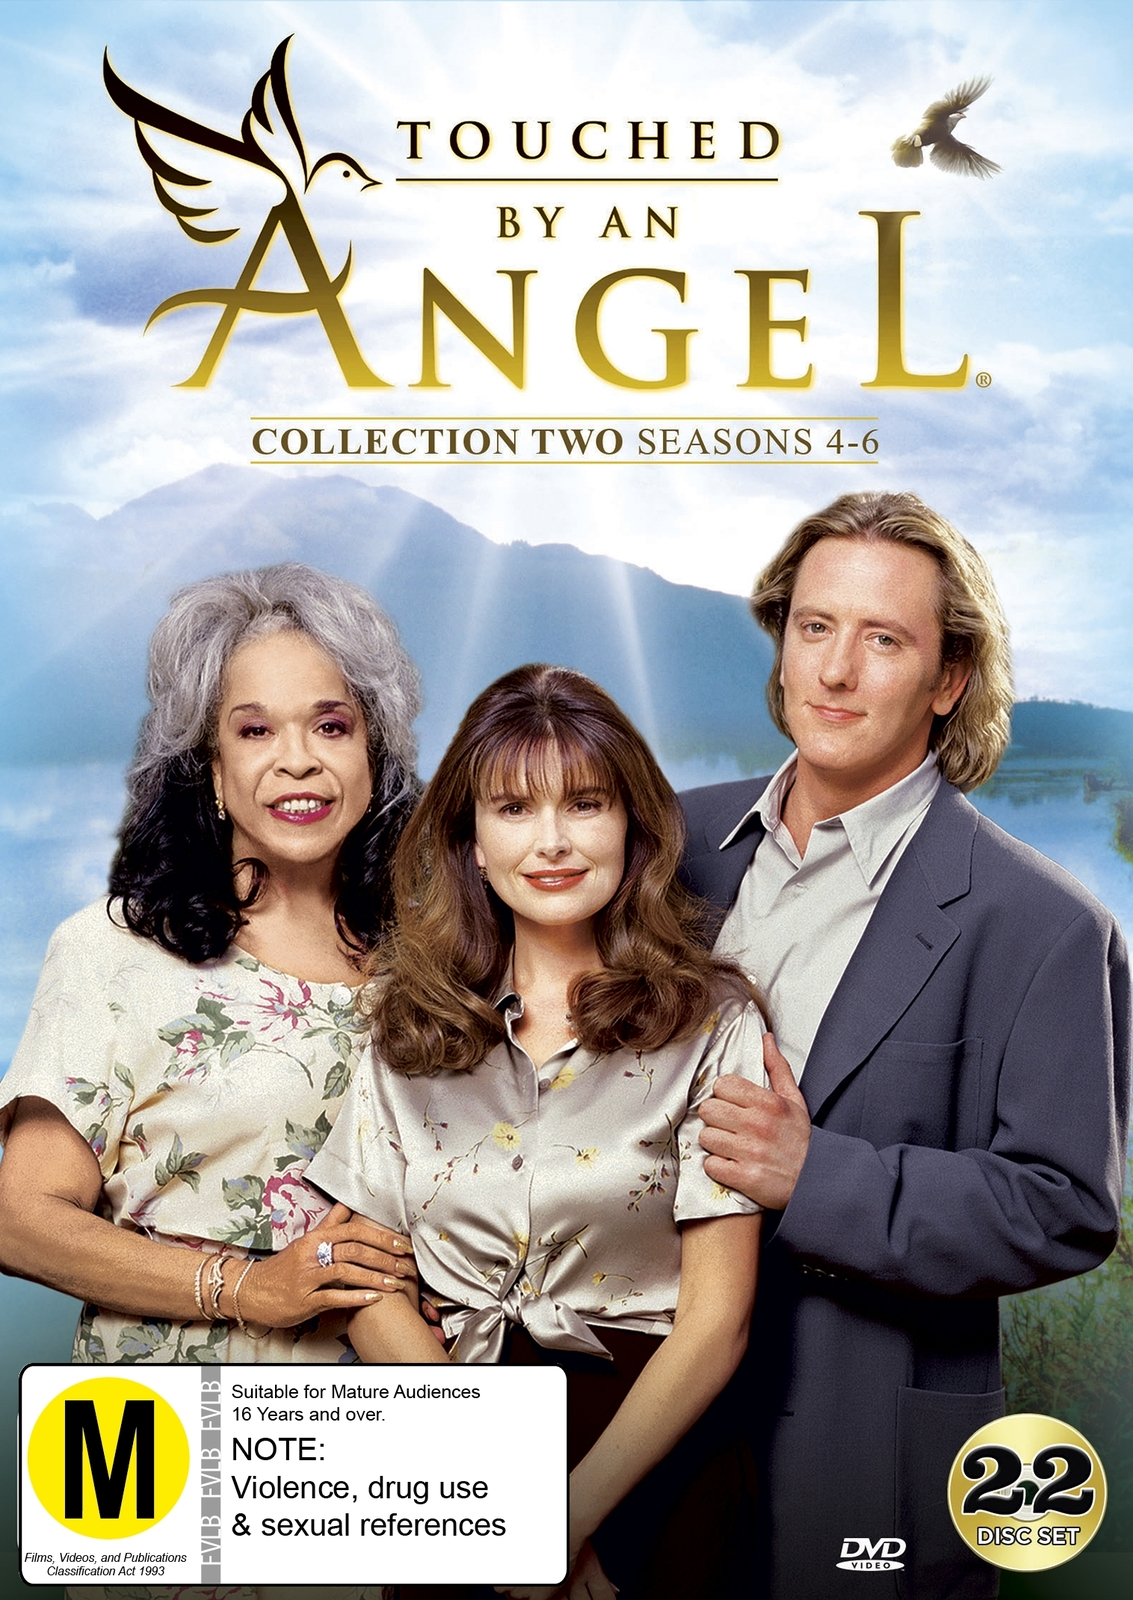 Touched By An Angel - Collection 2 (Season 4-6) on DVD image